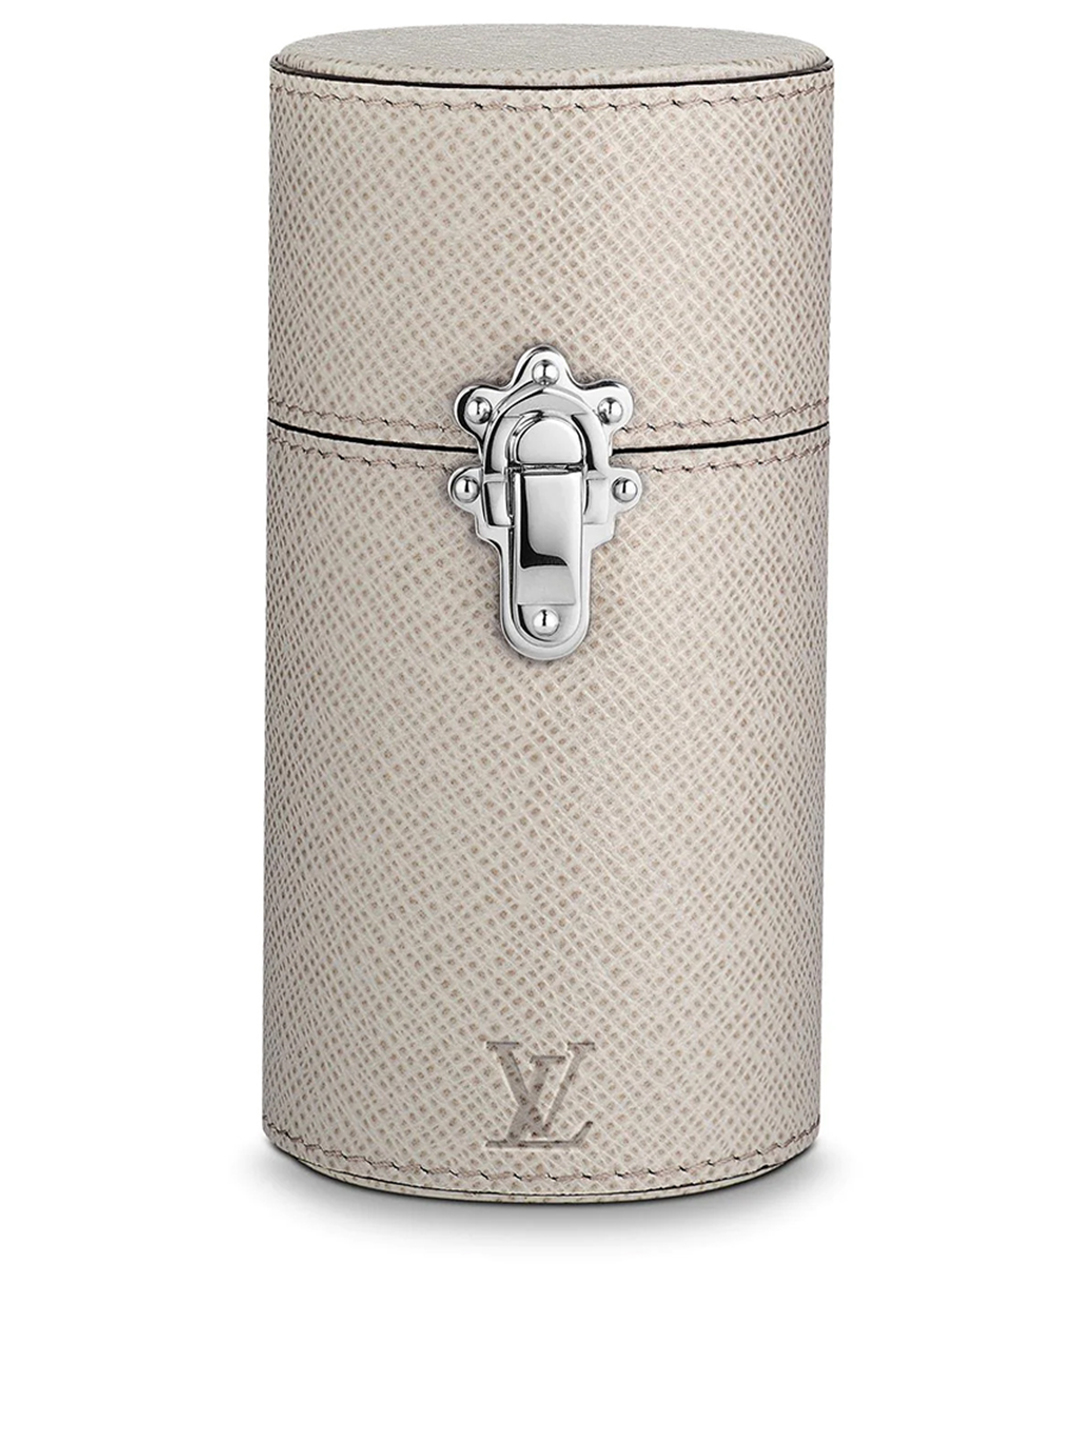 LOUIS VUITTON Travel Case 100ML Designers